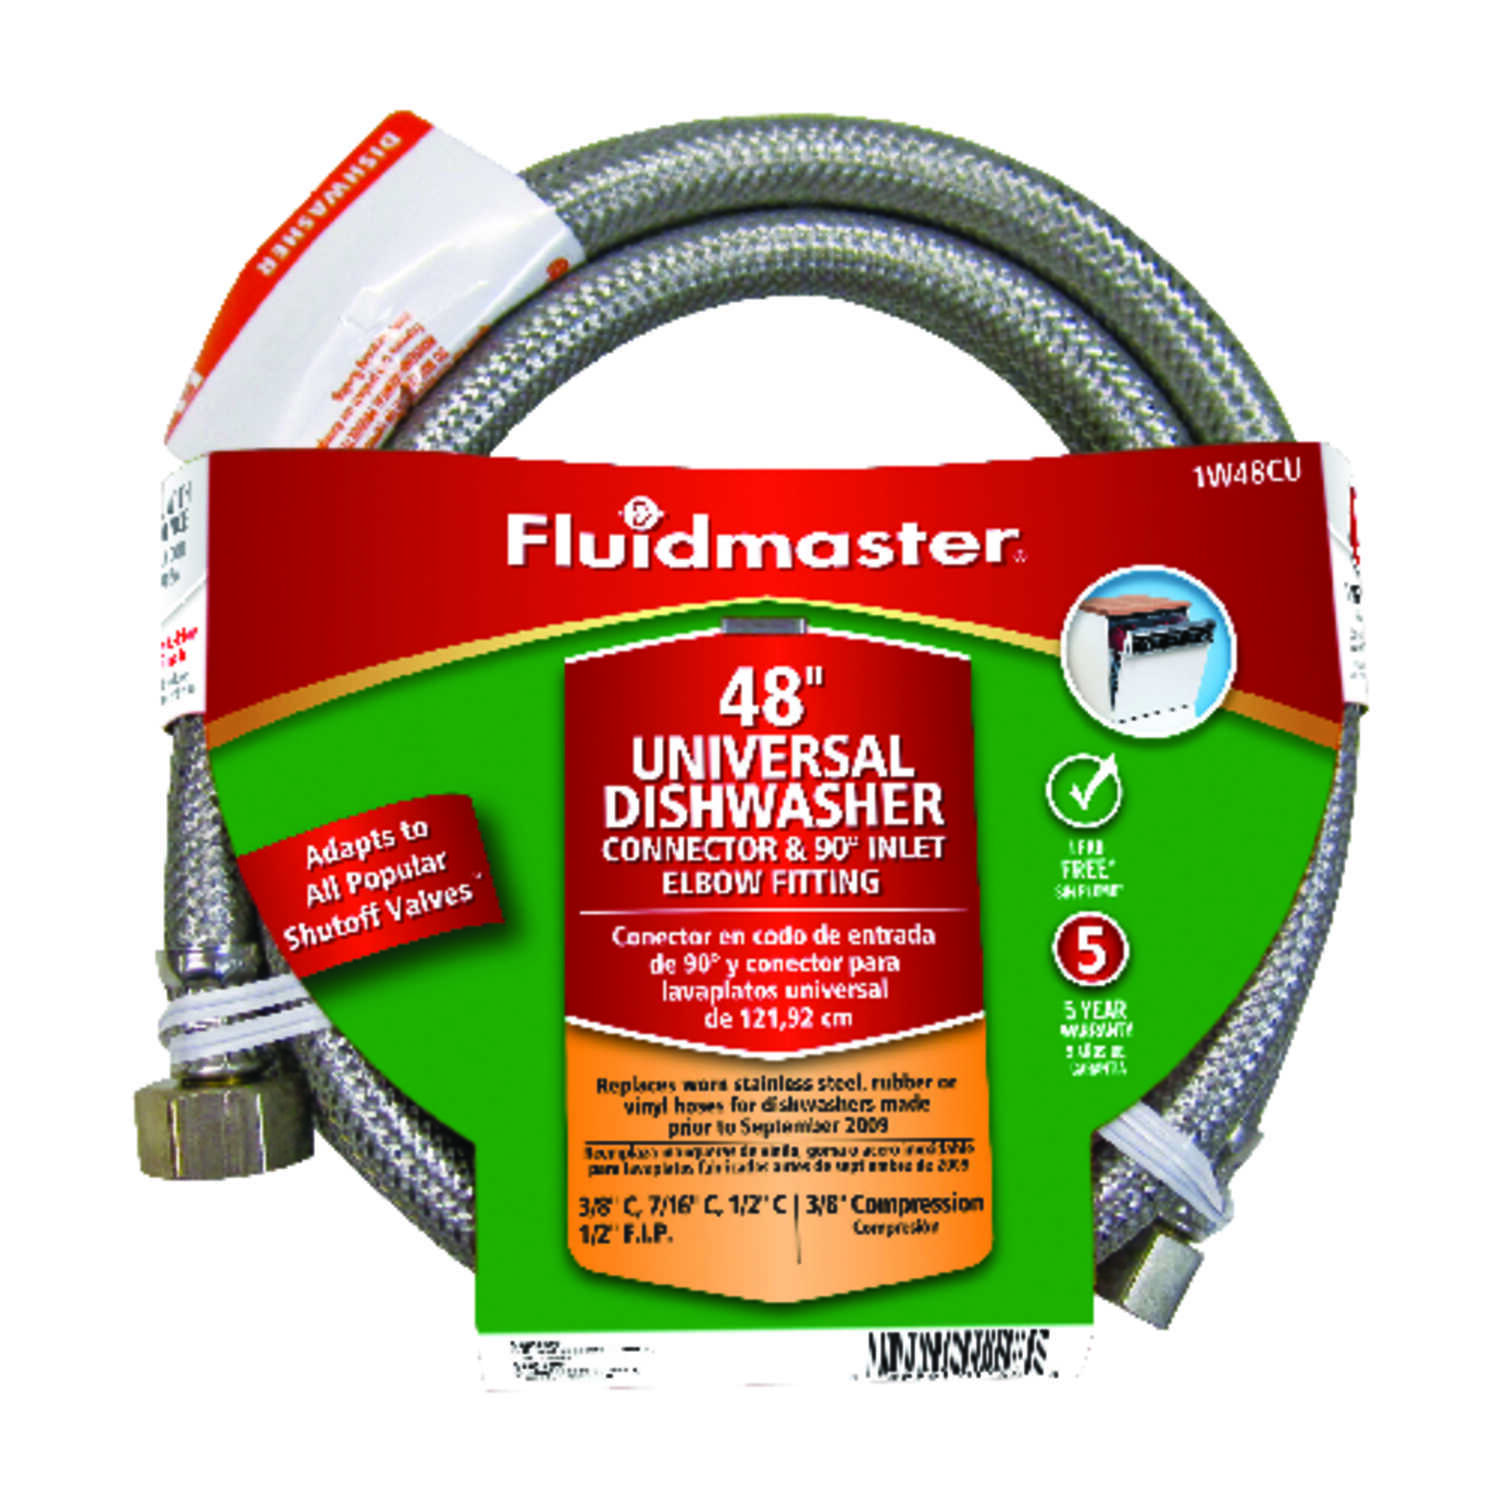 Fluidmaster  3/8 in. Compression   x 1/2 in. Dia. FIP  Stainless Steel  Dishwasher  Supply Line  48